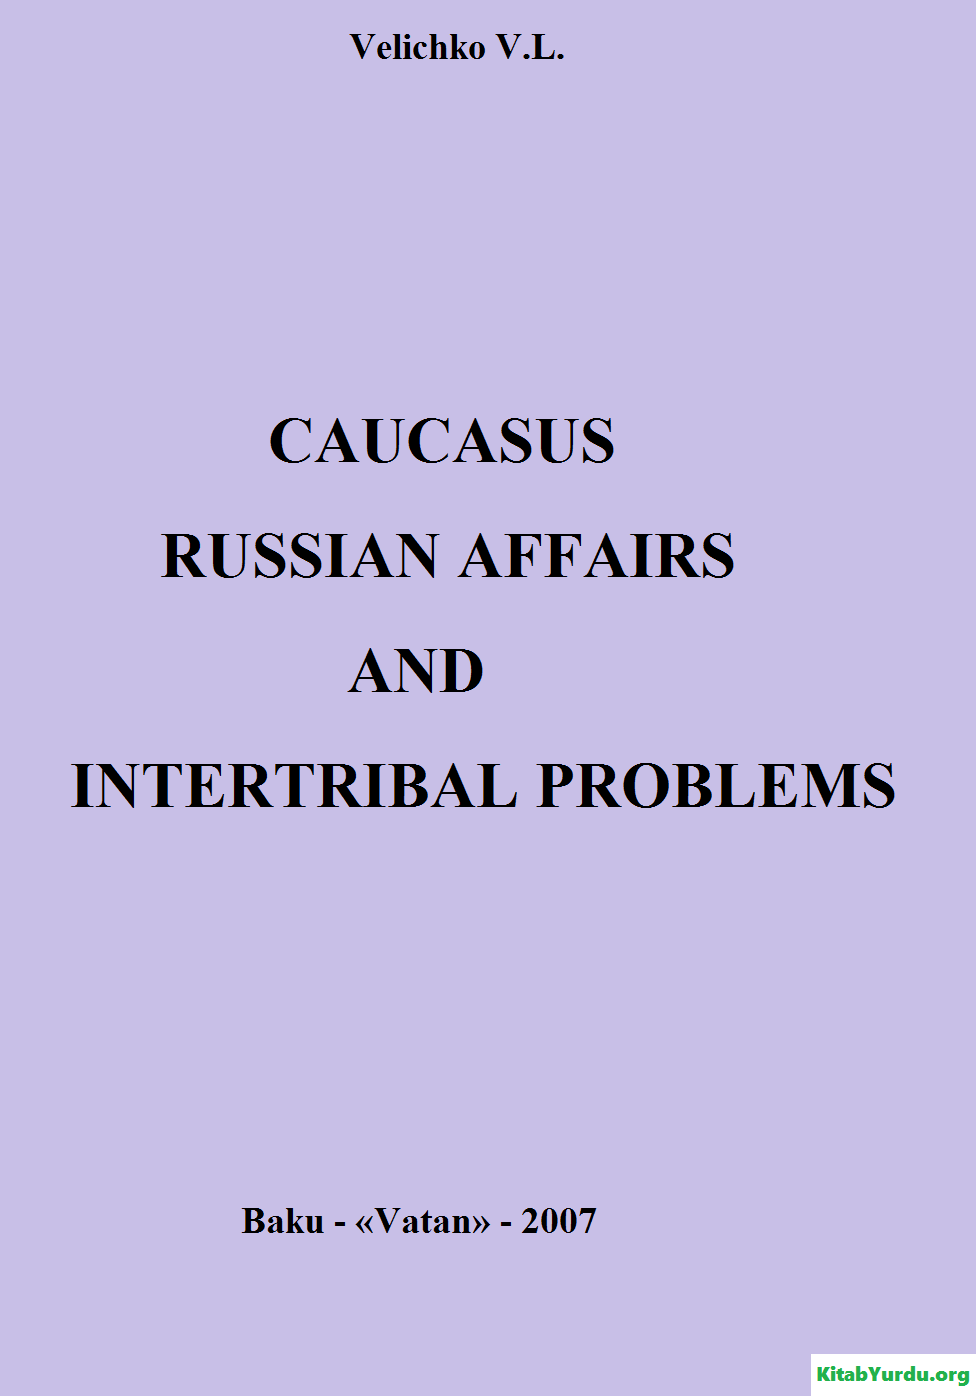 CAUCASUS RUSSIAN AFFAIRS AND INTERTRIBAL PROBLEMS